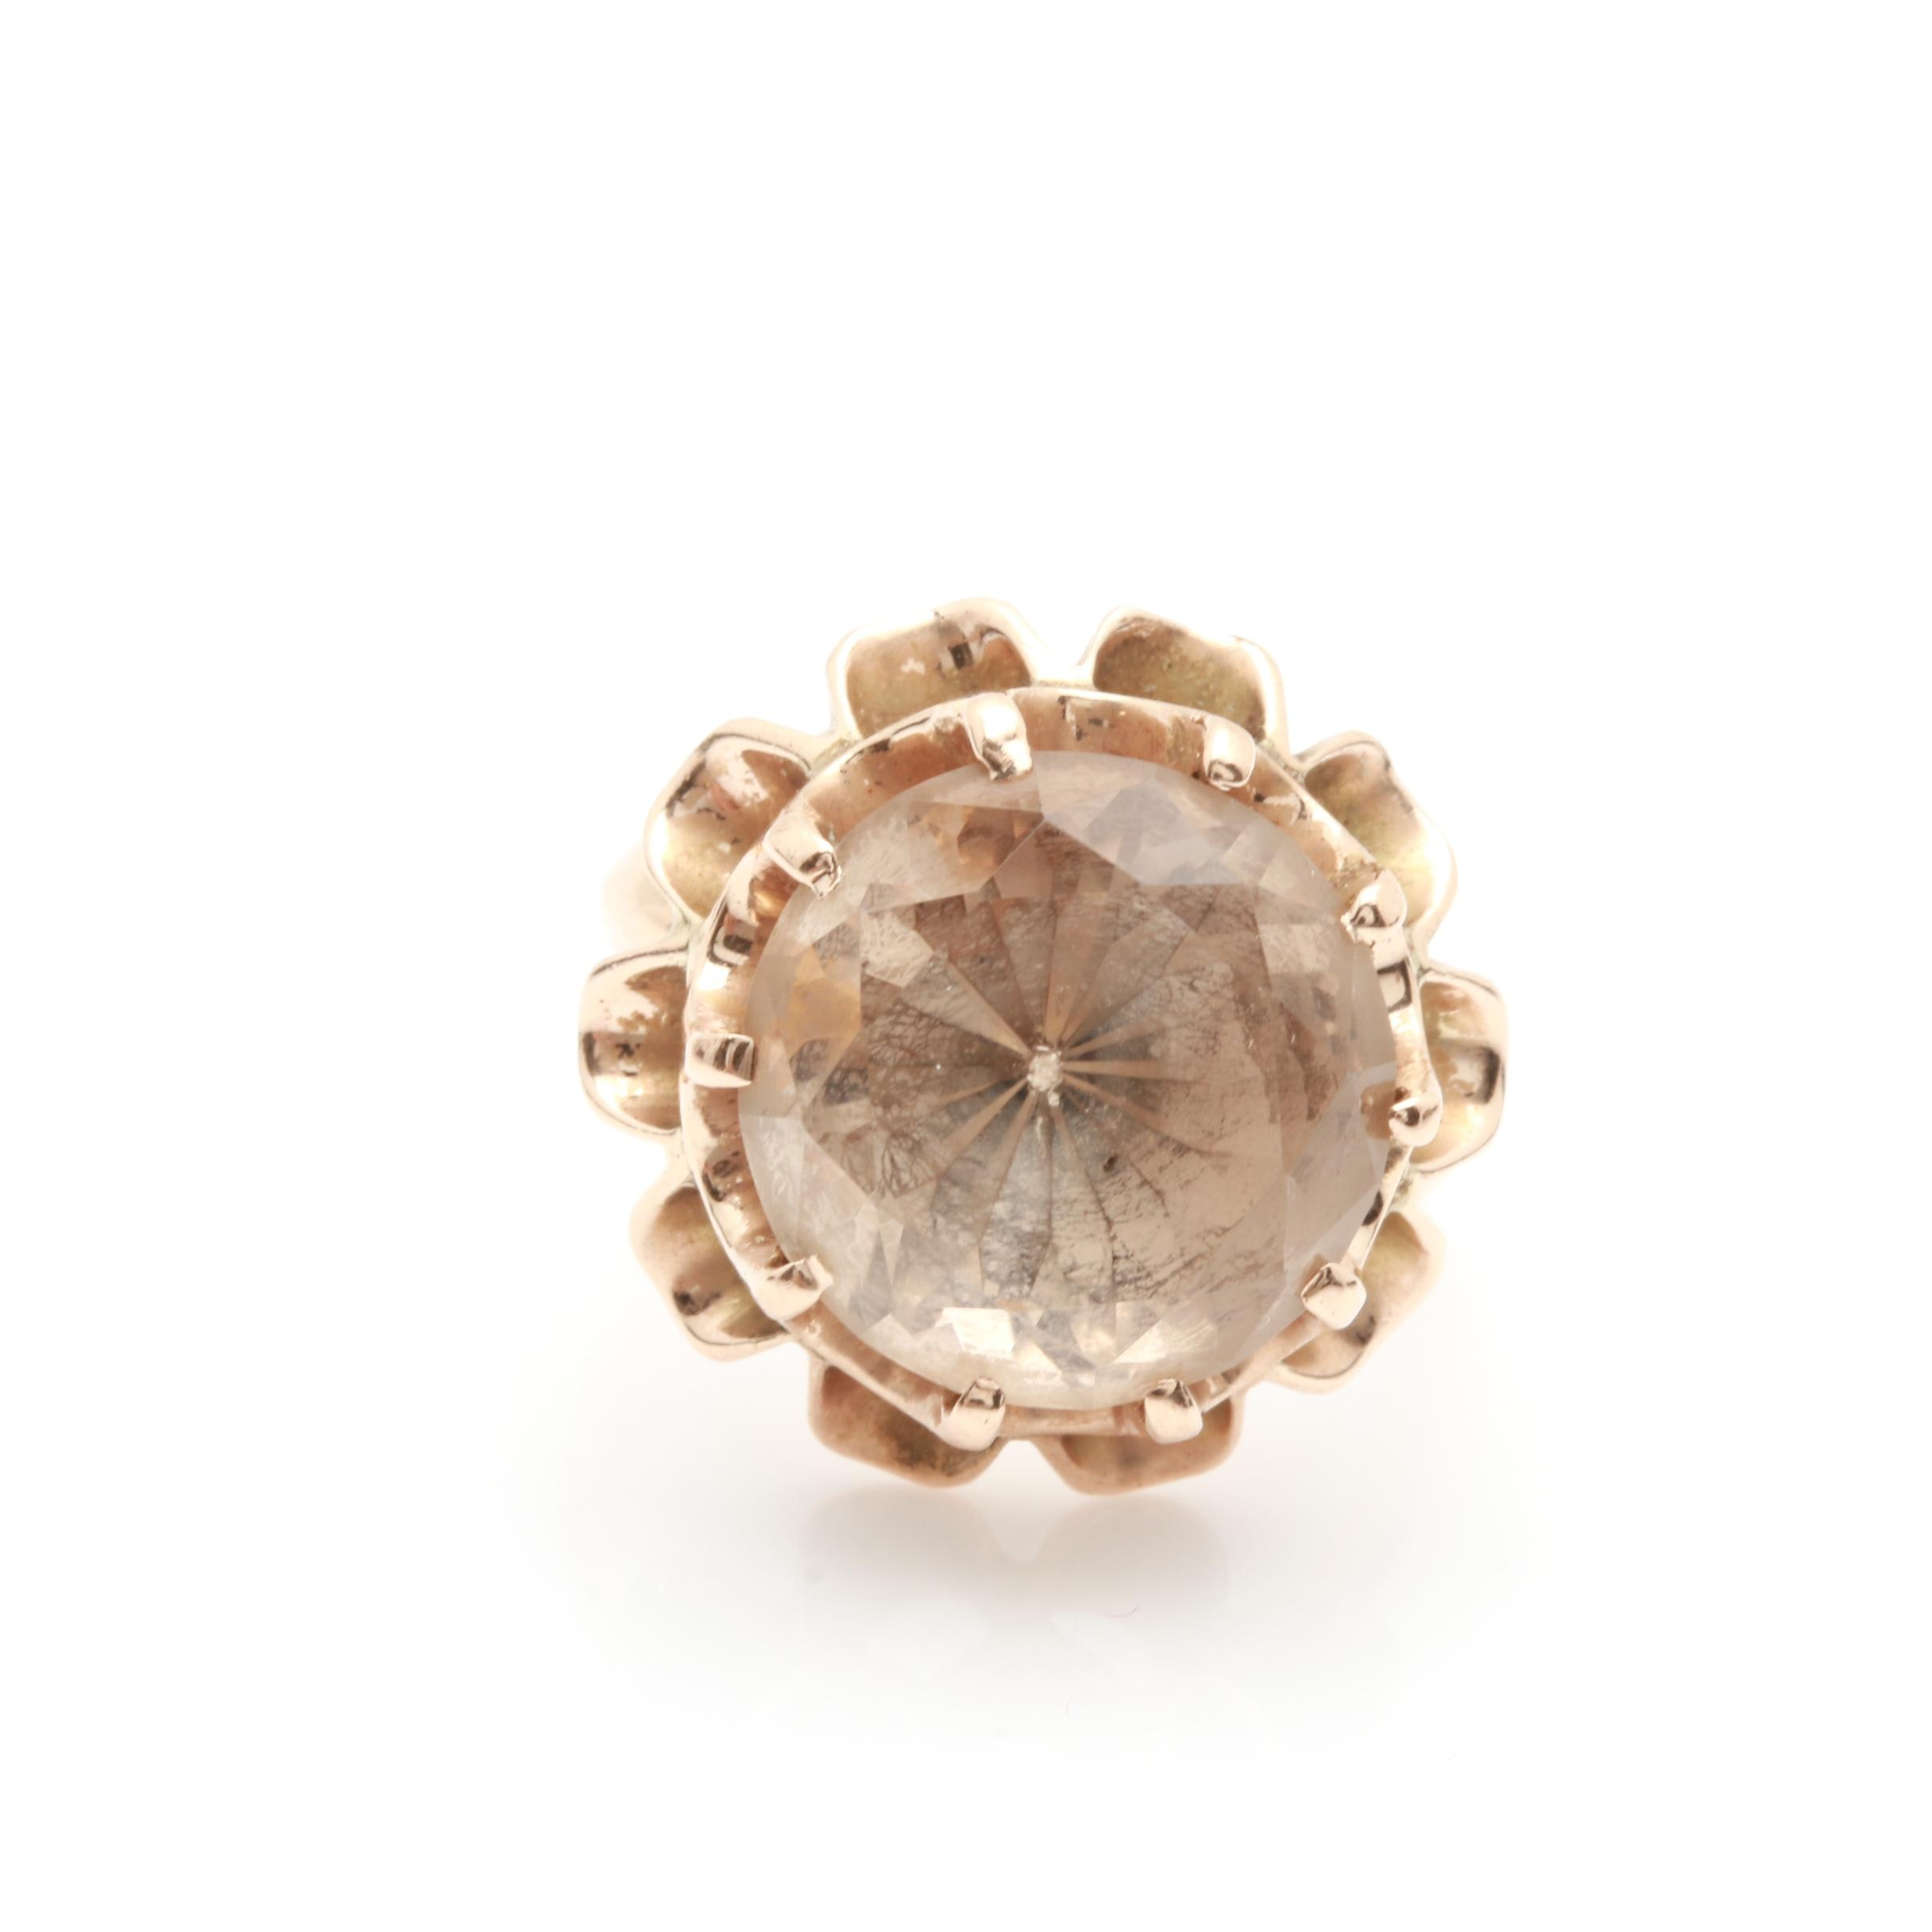 Vintage 14K Yellow Gold Smoky Quartz Solitaire Cocktail Ring